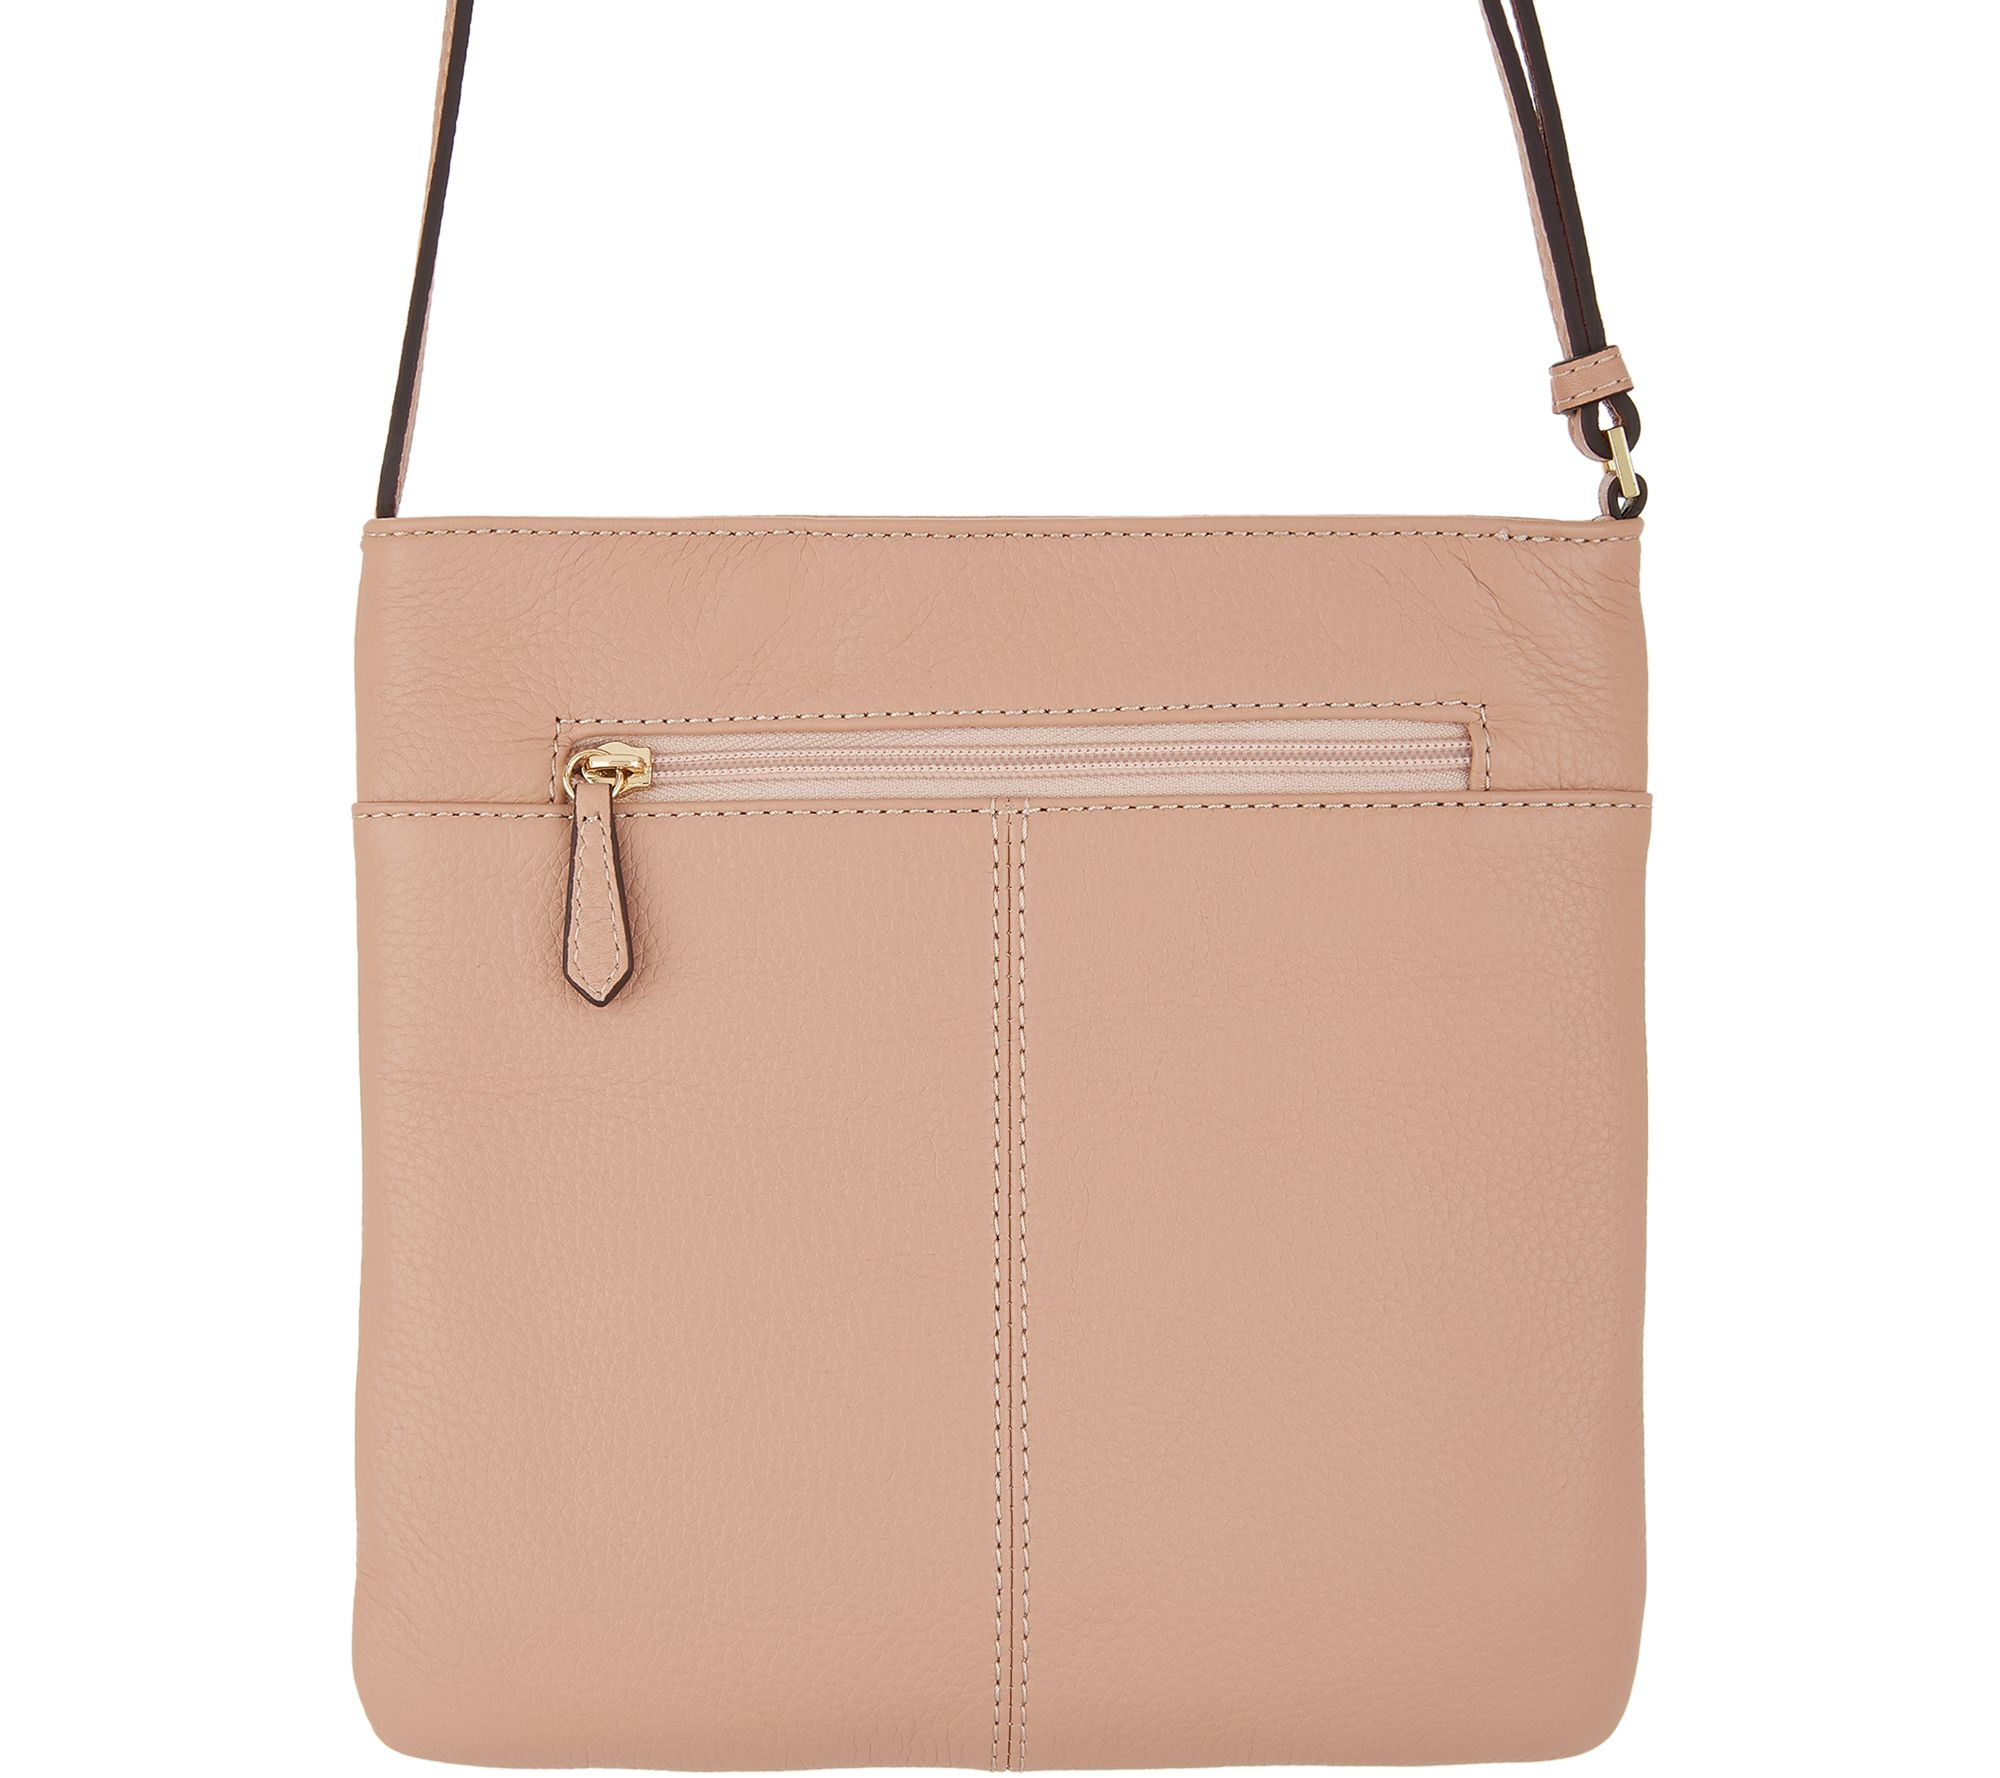 07526b9dad G.I.L.I. Leather Front Pocket Crossbody - Lucca - Page 1 — QVC.com